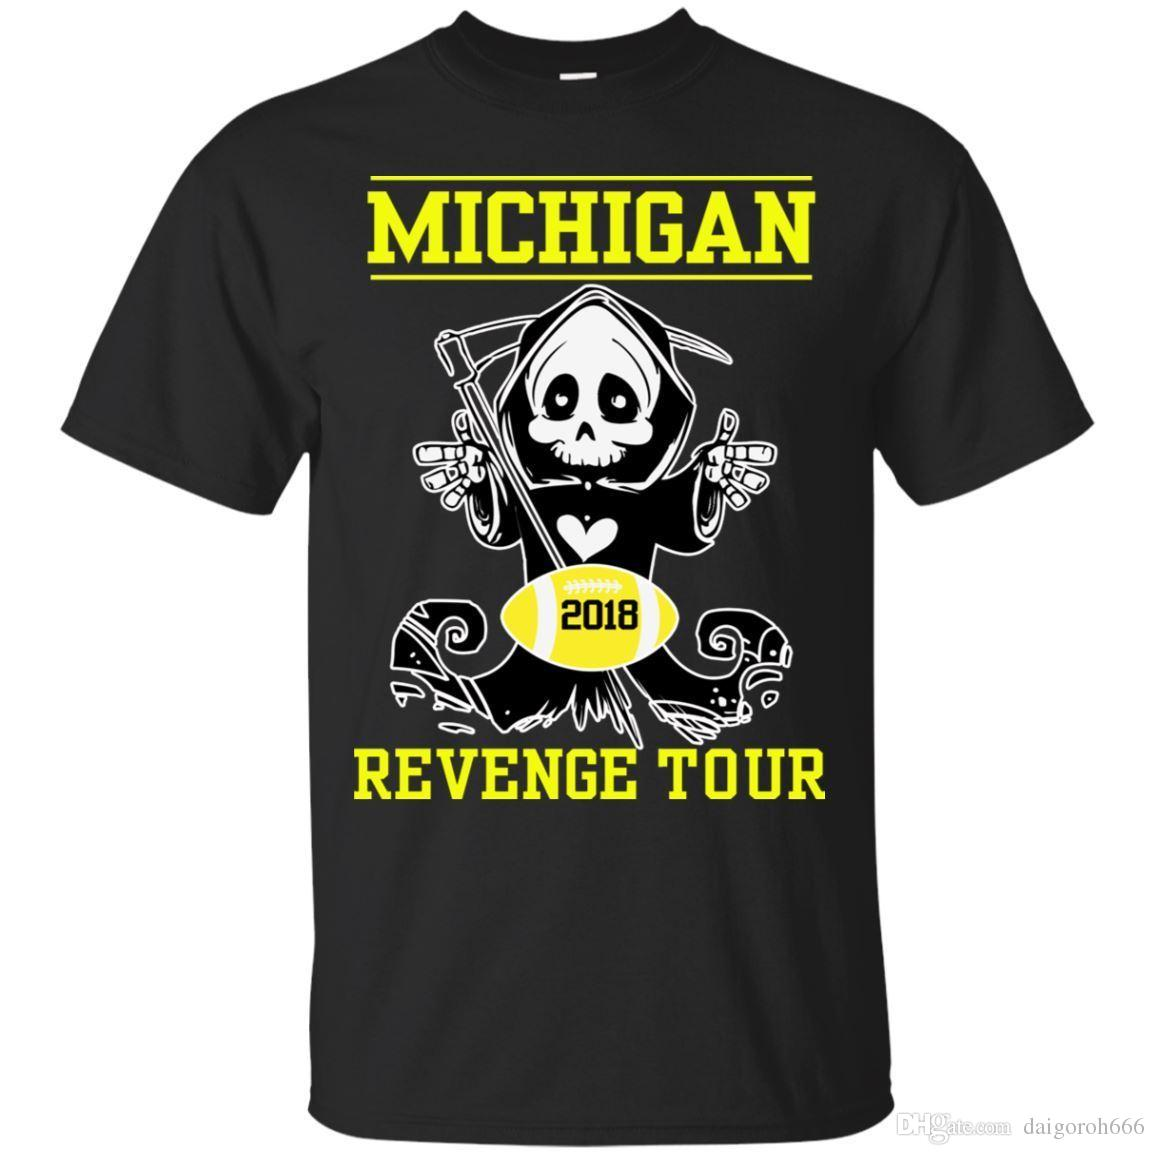 Black Navy T Shirt Michigan Revenge Tour Football T Shirt S 4xl